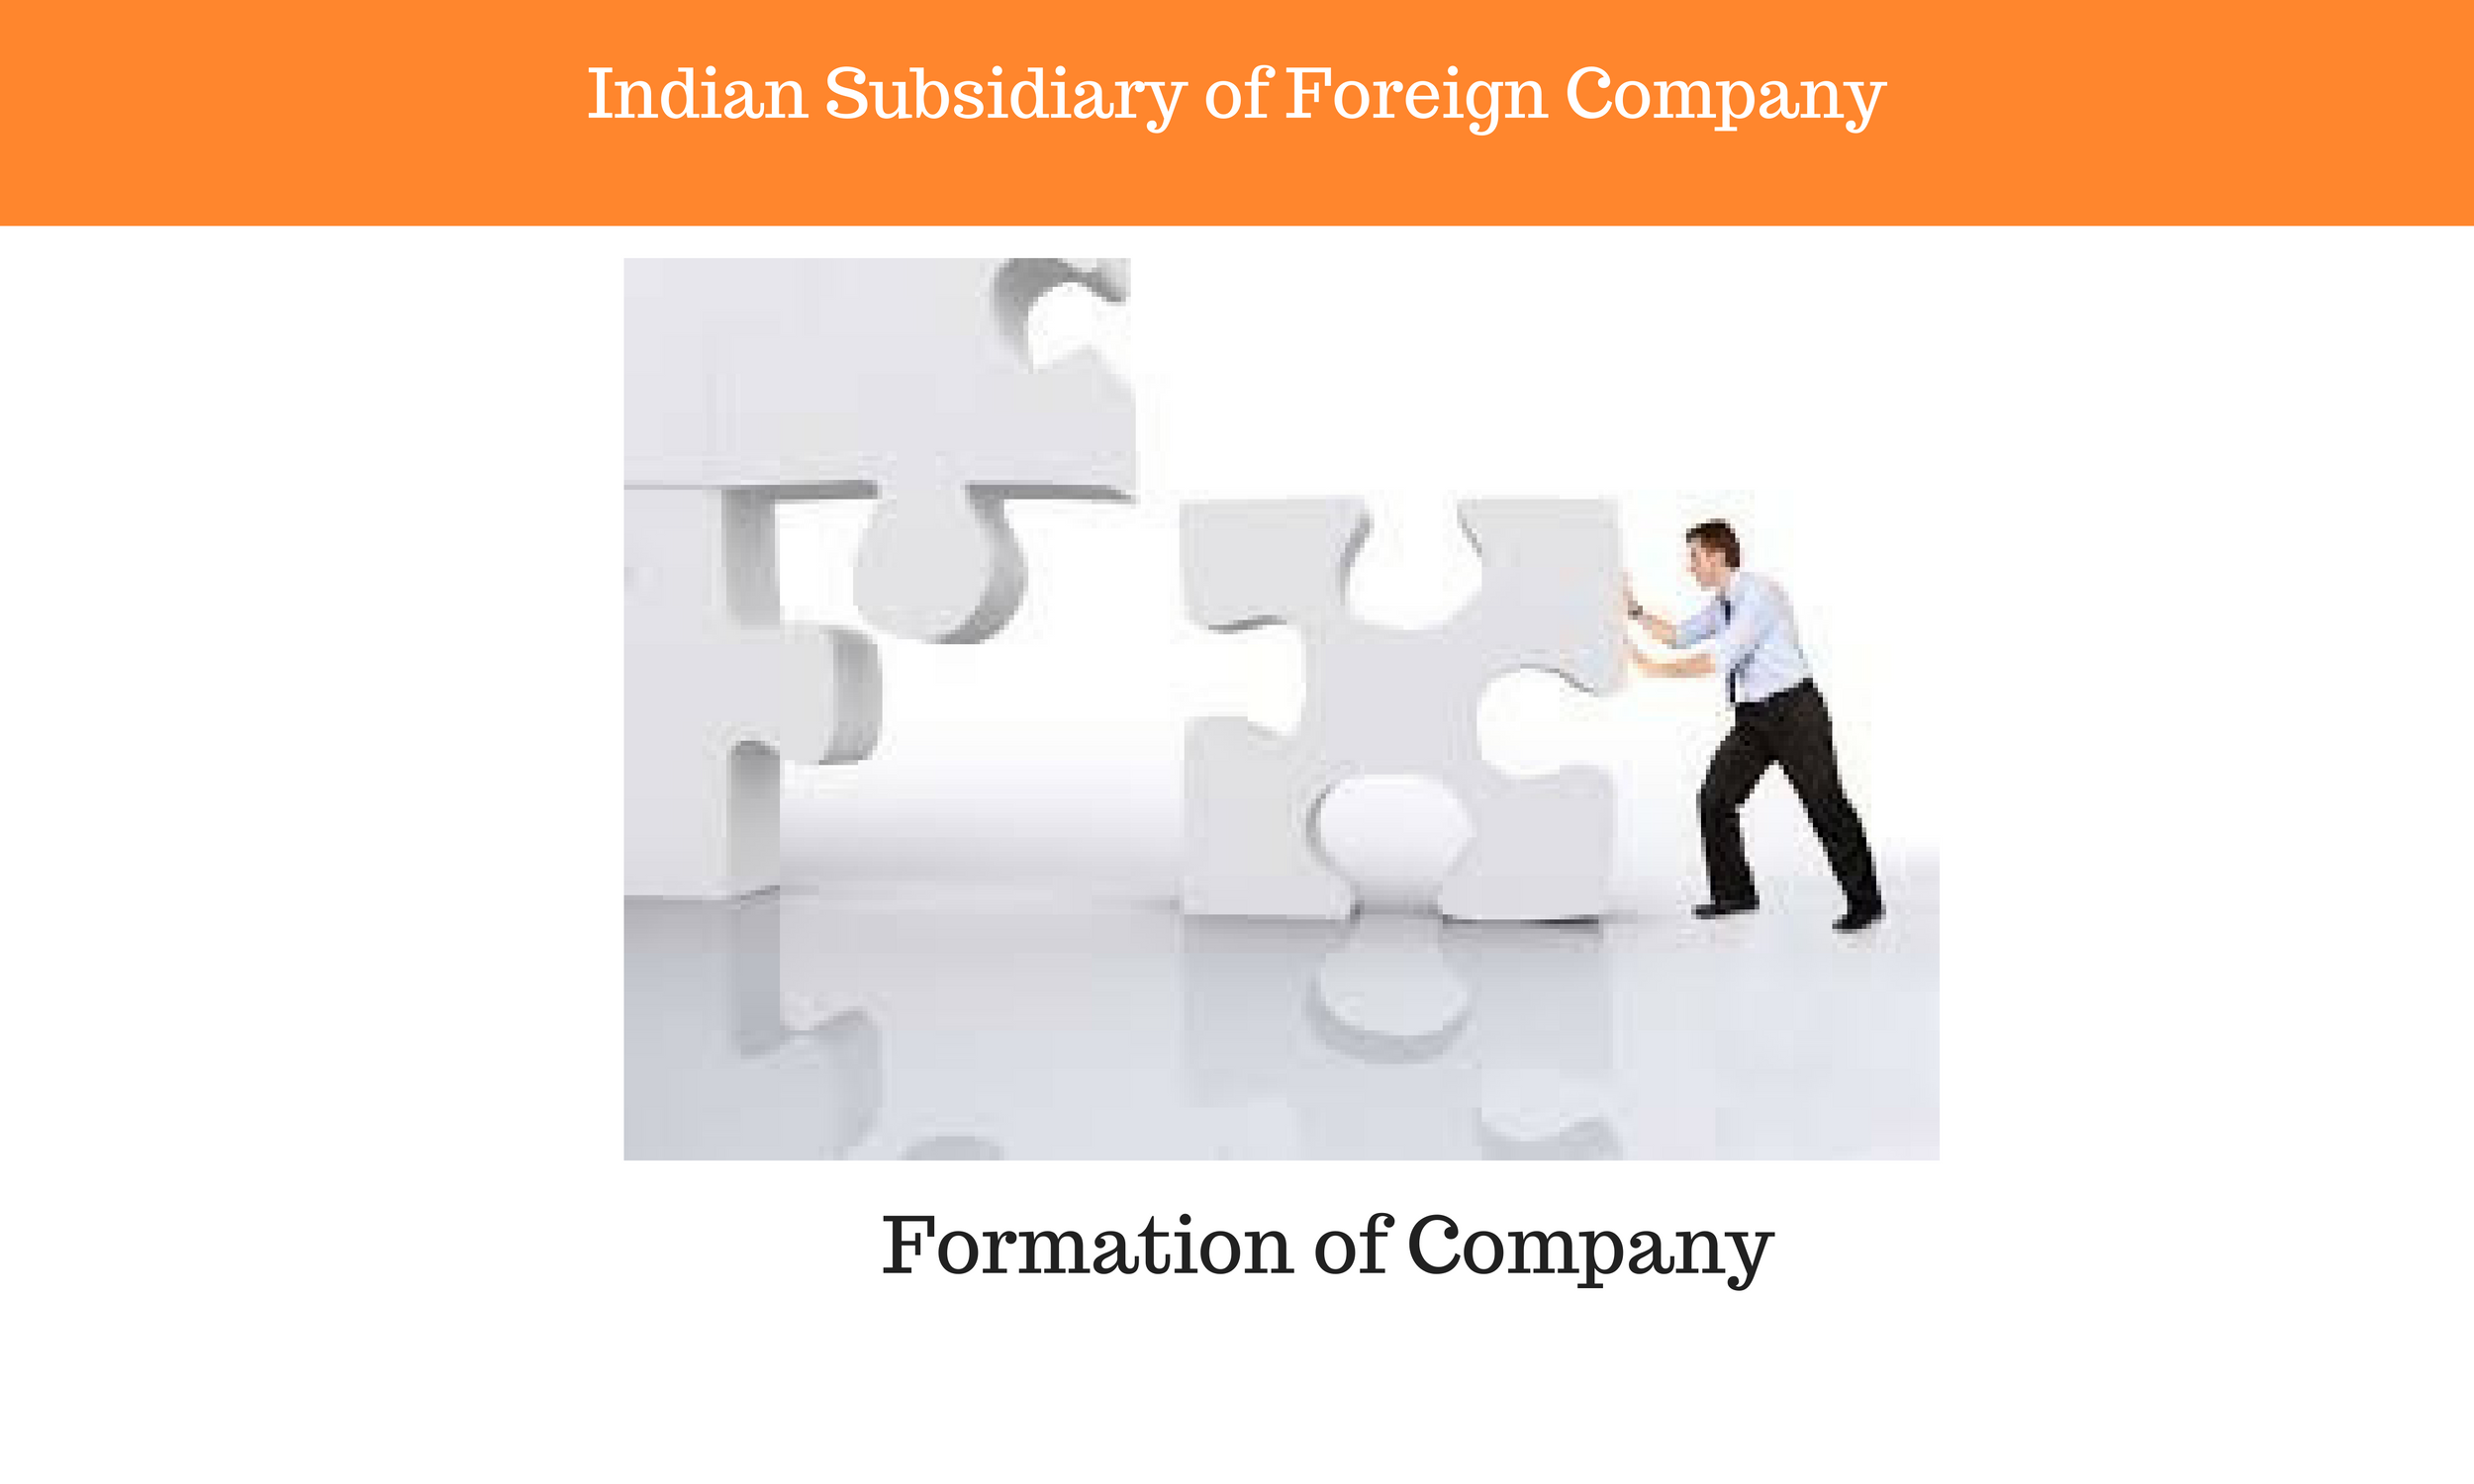 Indian Subsidiary of Foreign Company